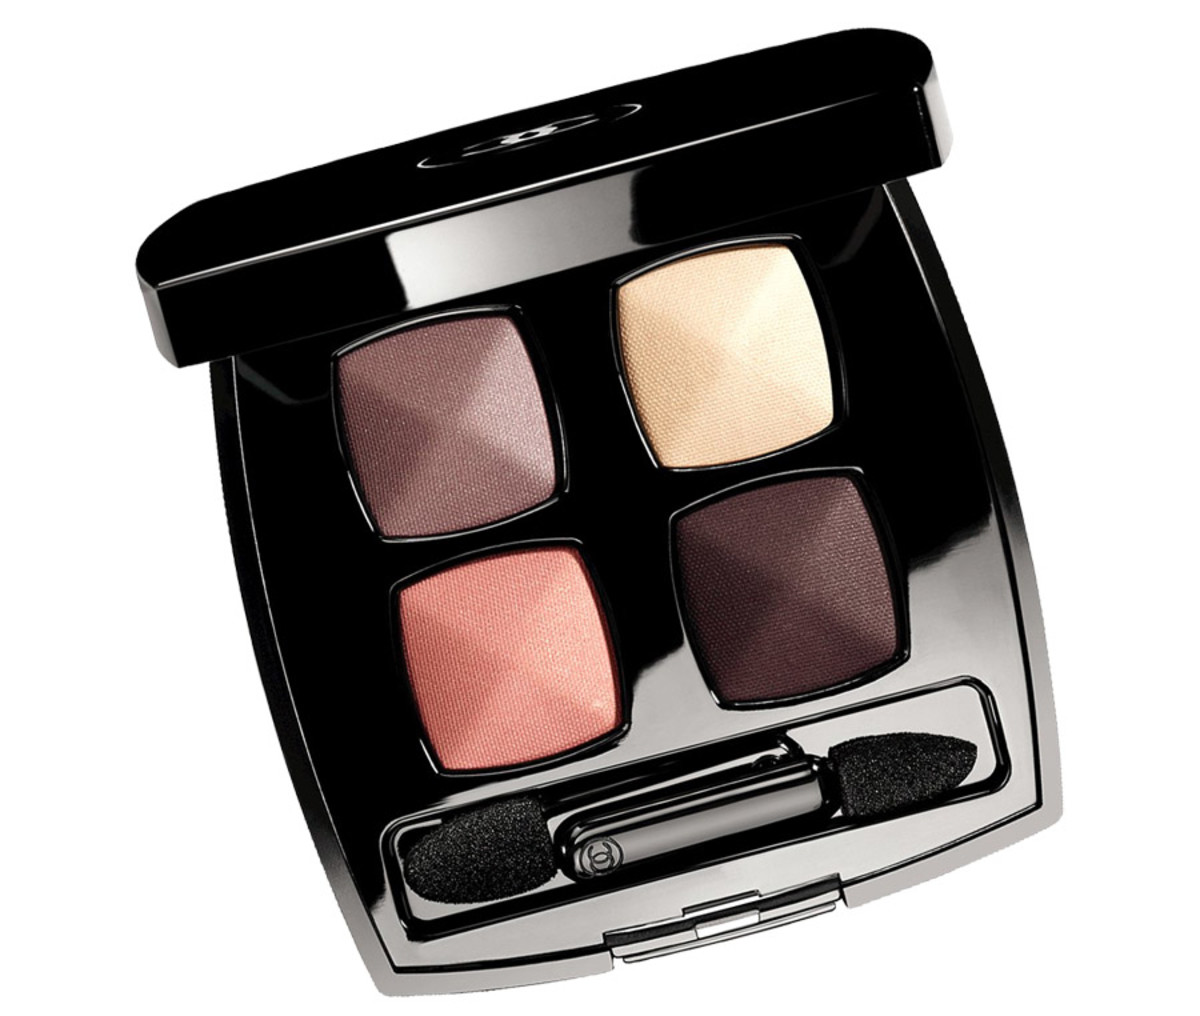 Chanel Spring 2014_Lumieres Facettes Quadrille Eye Shadow Quad_original image courtesy of Chanel_altered by BEAUTYGEEKS imabeautygeek.com.jpg